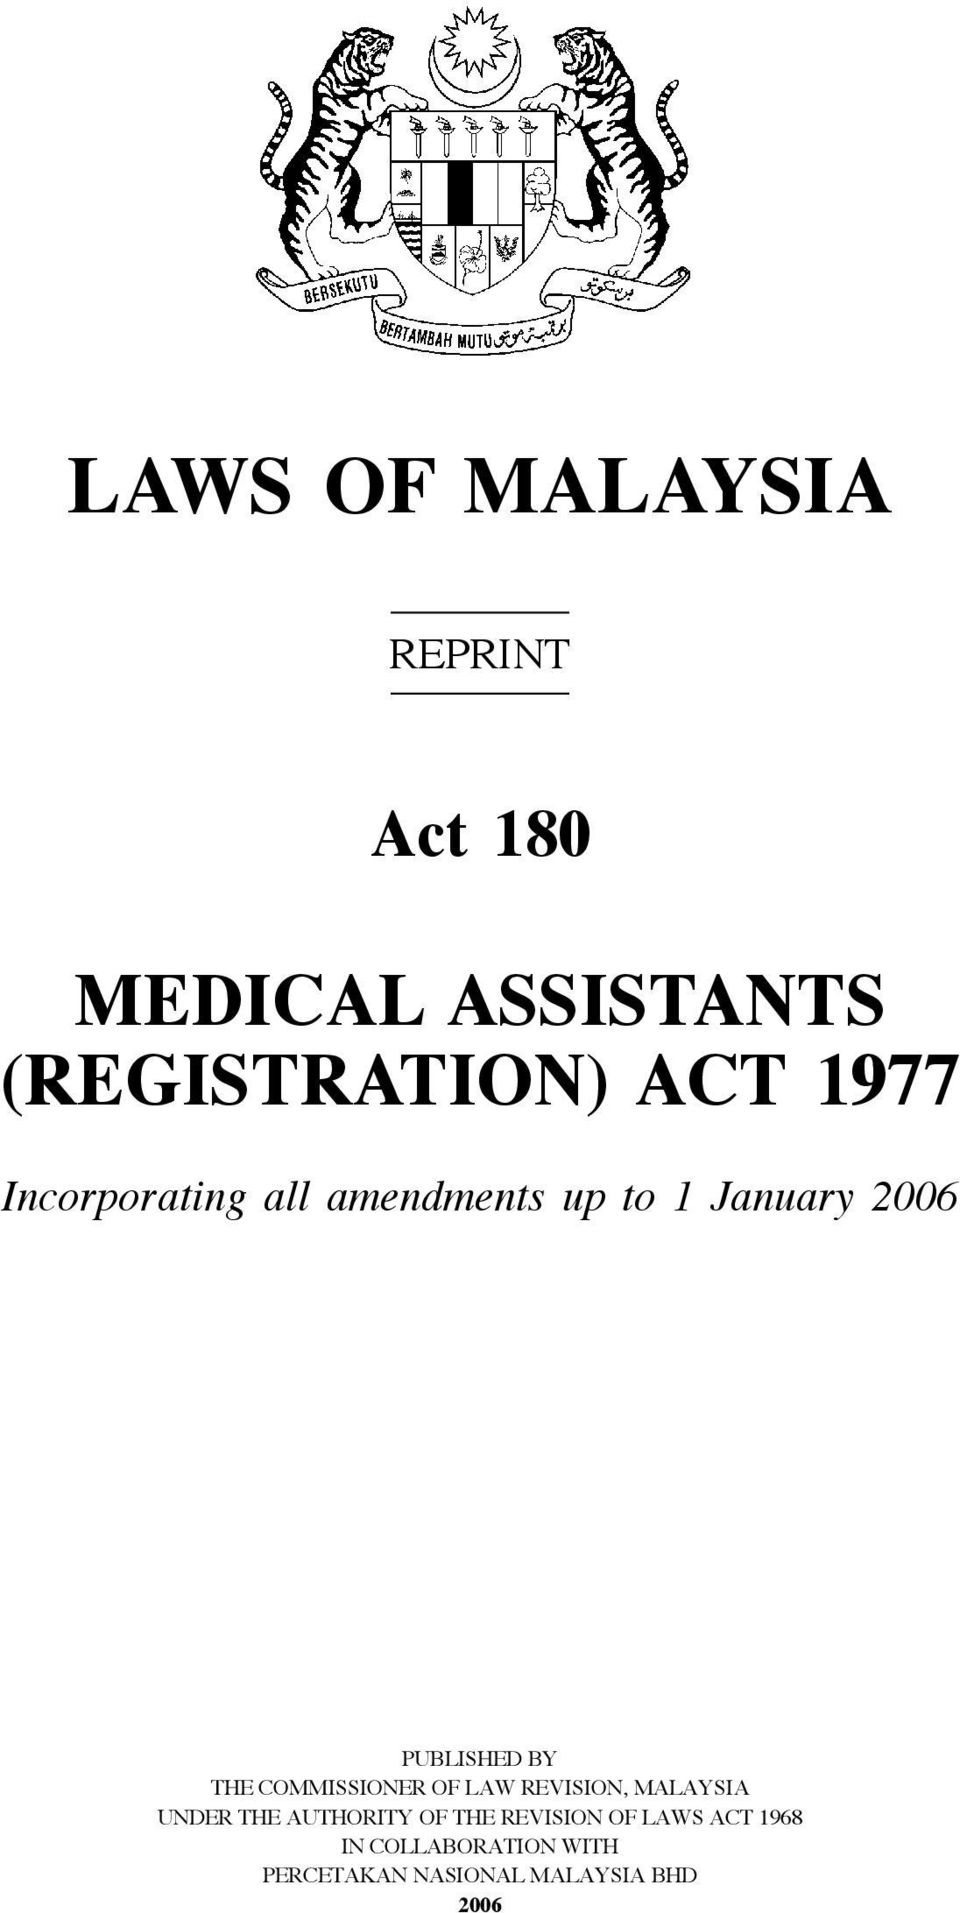 2006 PUBLISHED BY THE COMMISSIONER OF LAW REVISION, MALAYSIA UNDER THE AUTHORITY